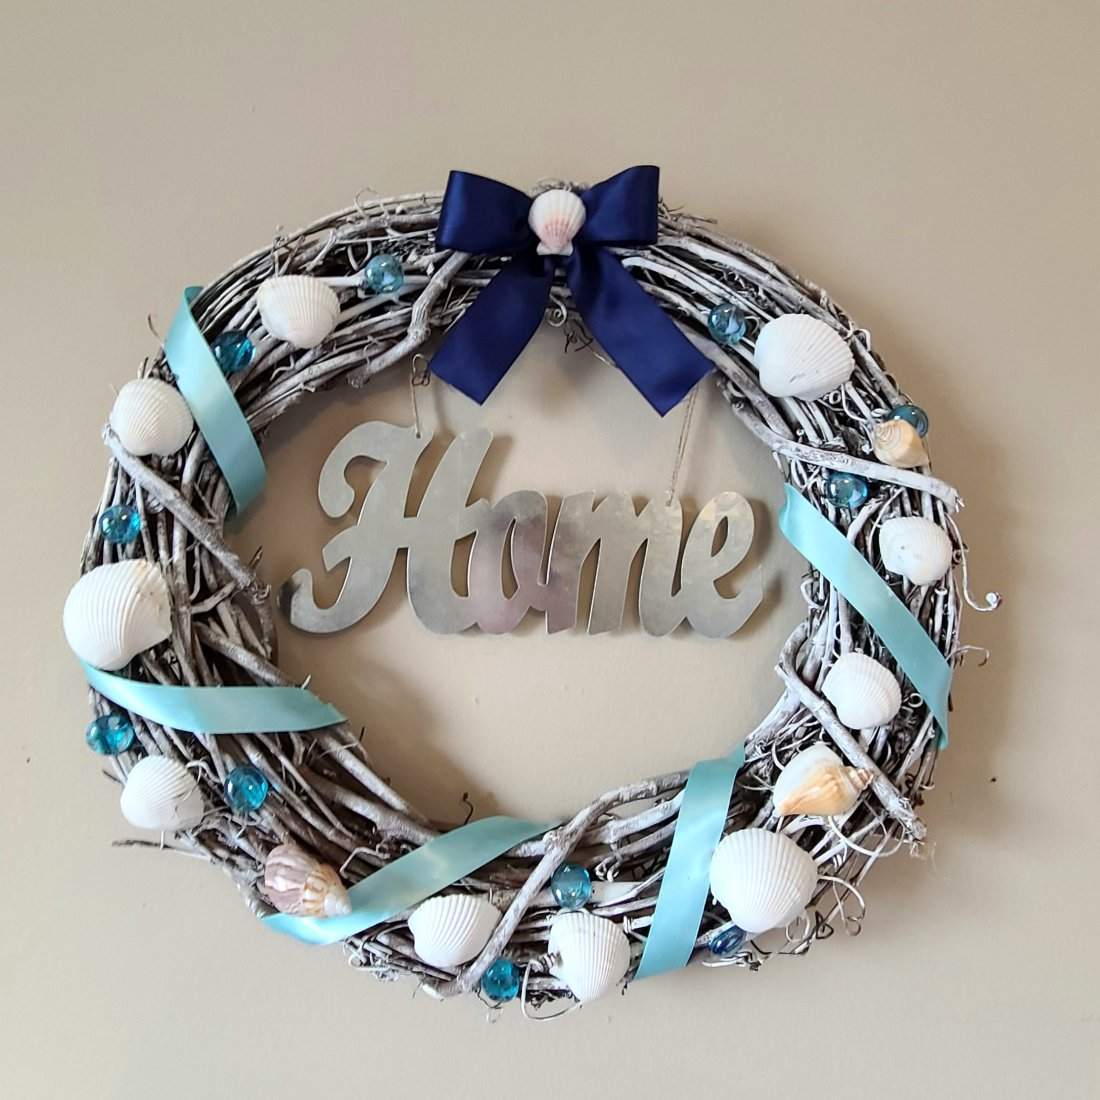 """Beach wreath, grapevine form, robin's egg blue satin ribbon wound around, navy satin ribbon at the top with a small seashell in the middle of the bow. Galvanized silver word """"home"""" in the middle of the wreath."""